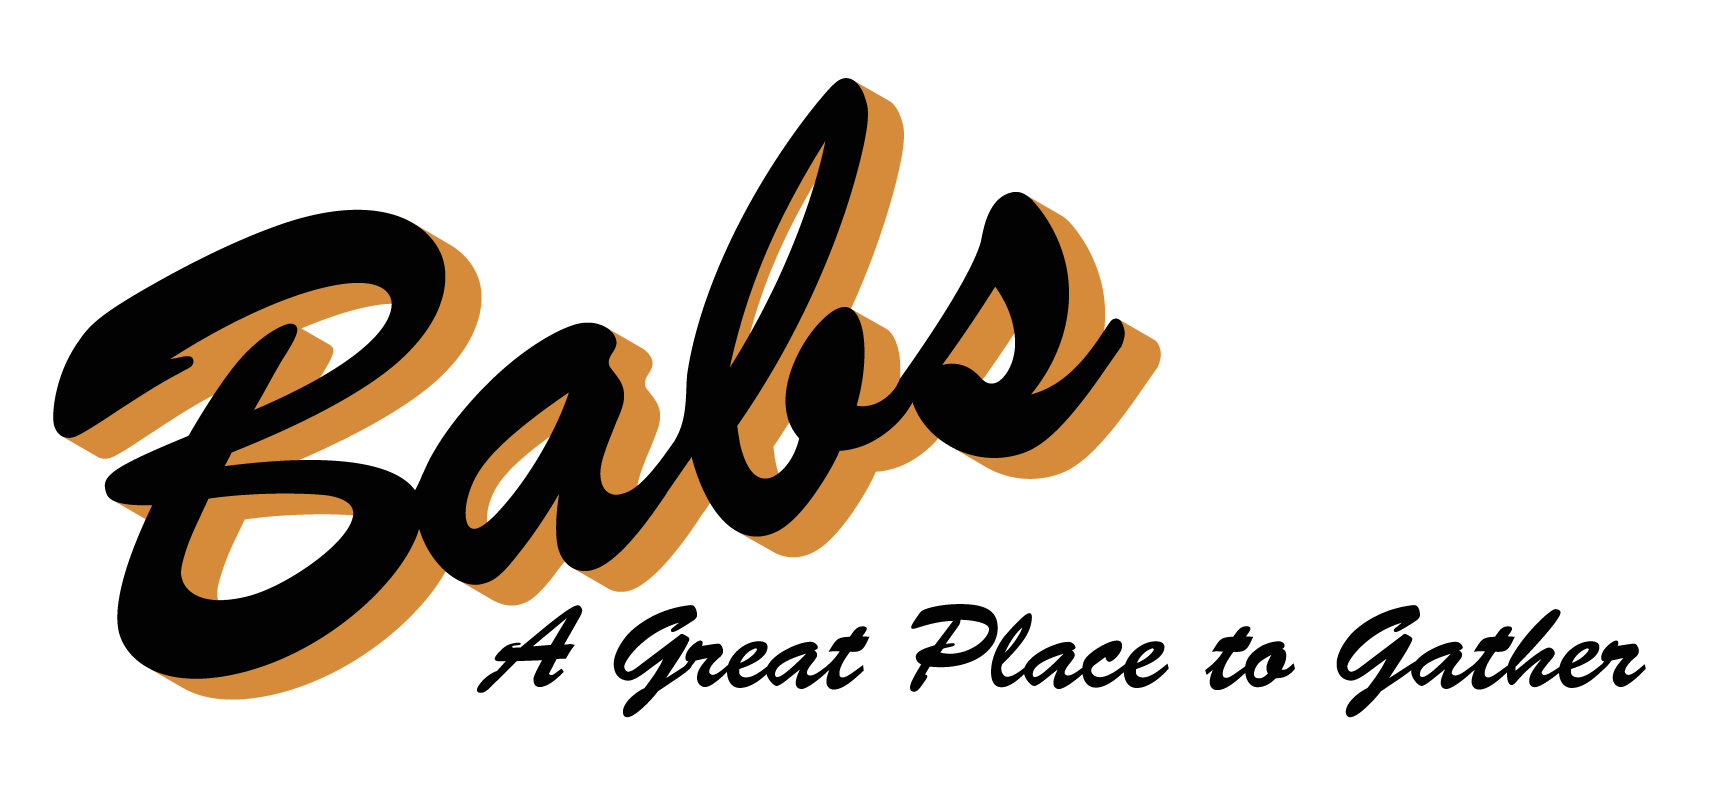 Babs_Logo-[Converted].png